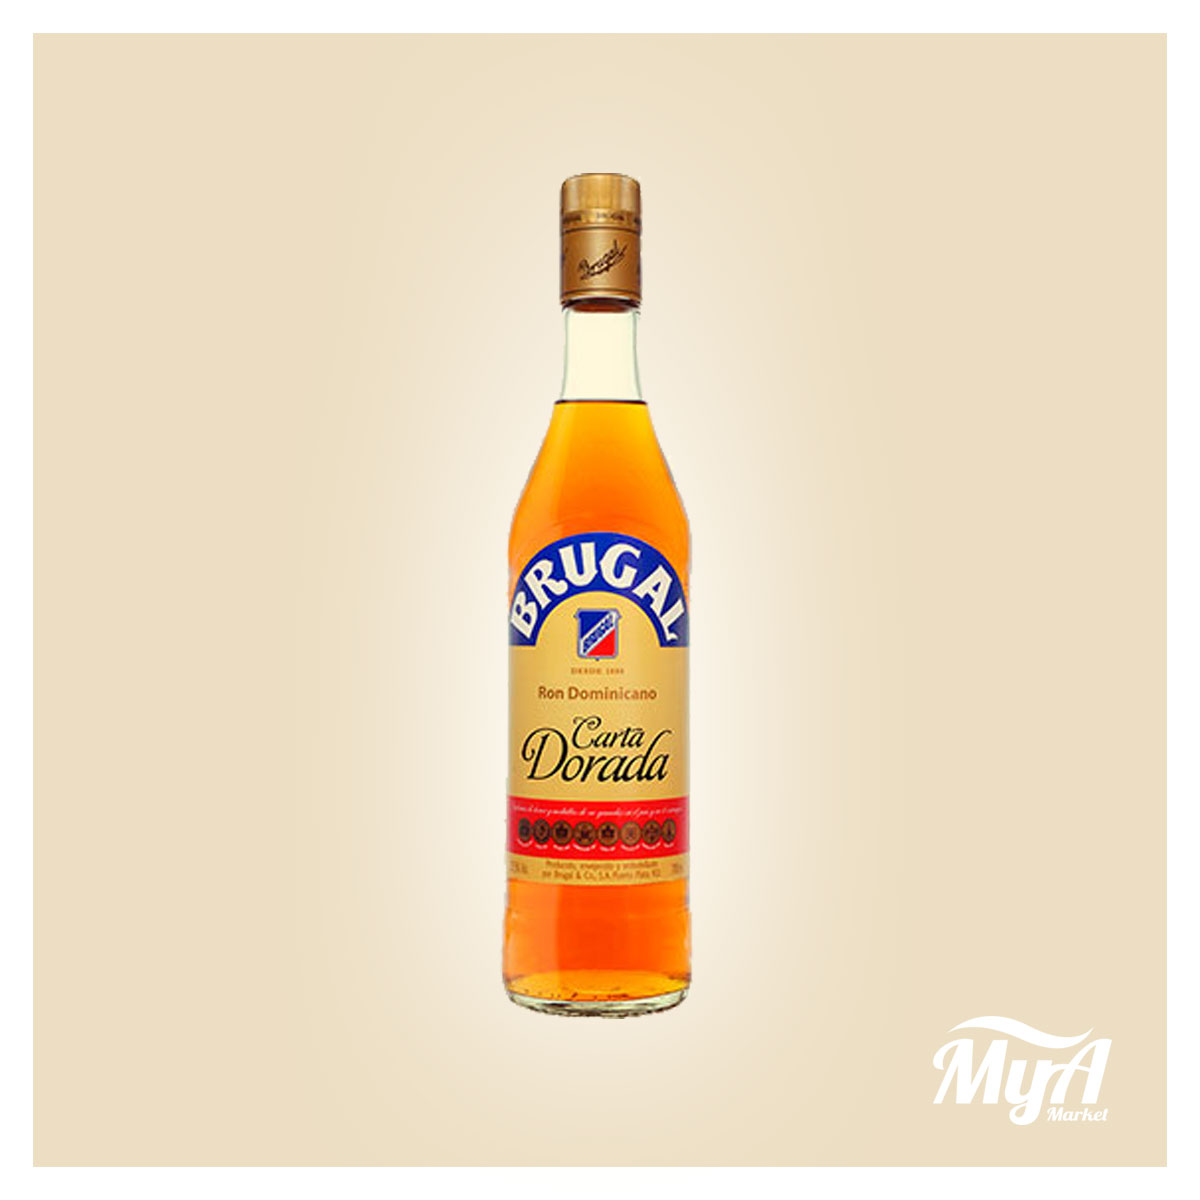 Brugal Carta Dorada 700ml